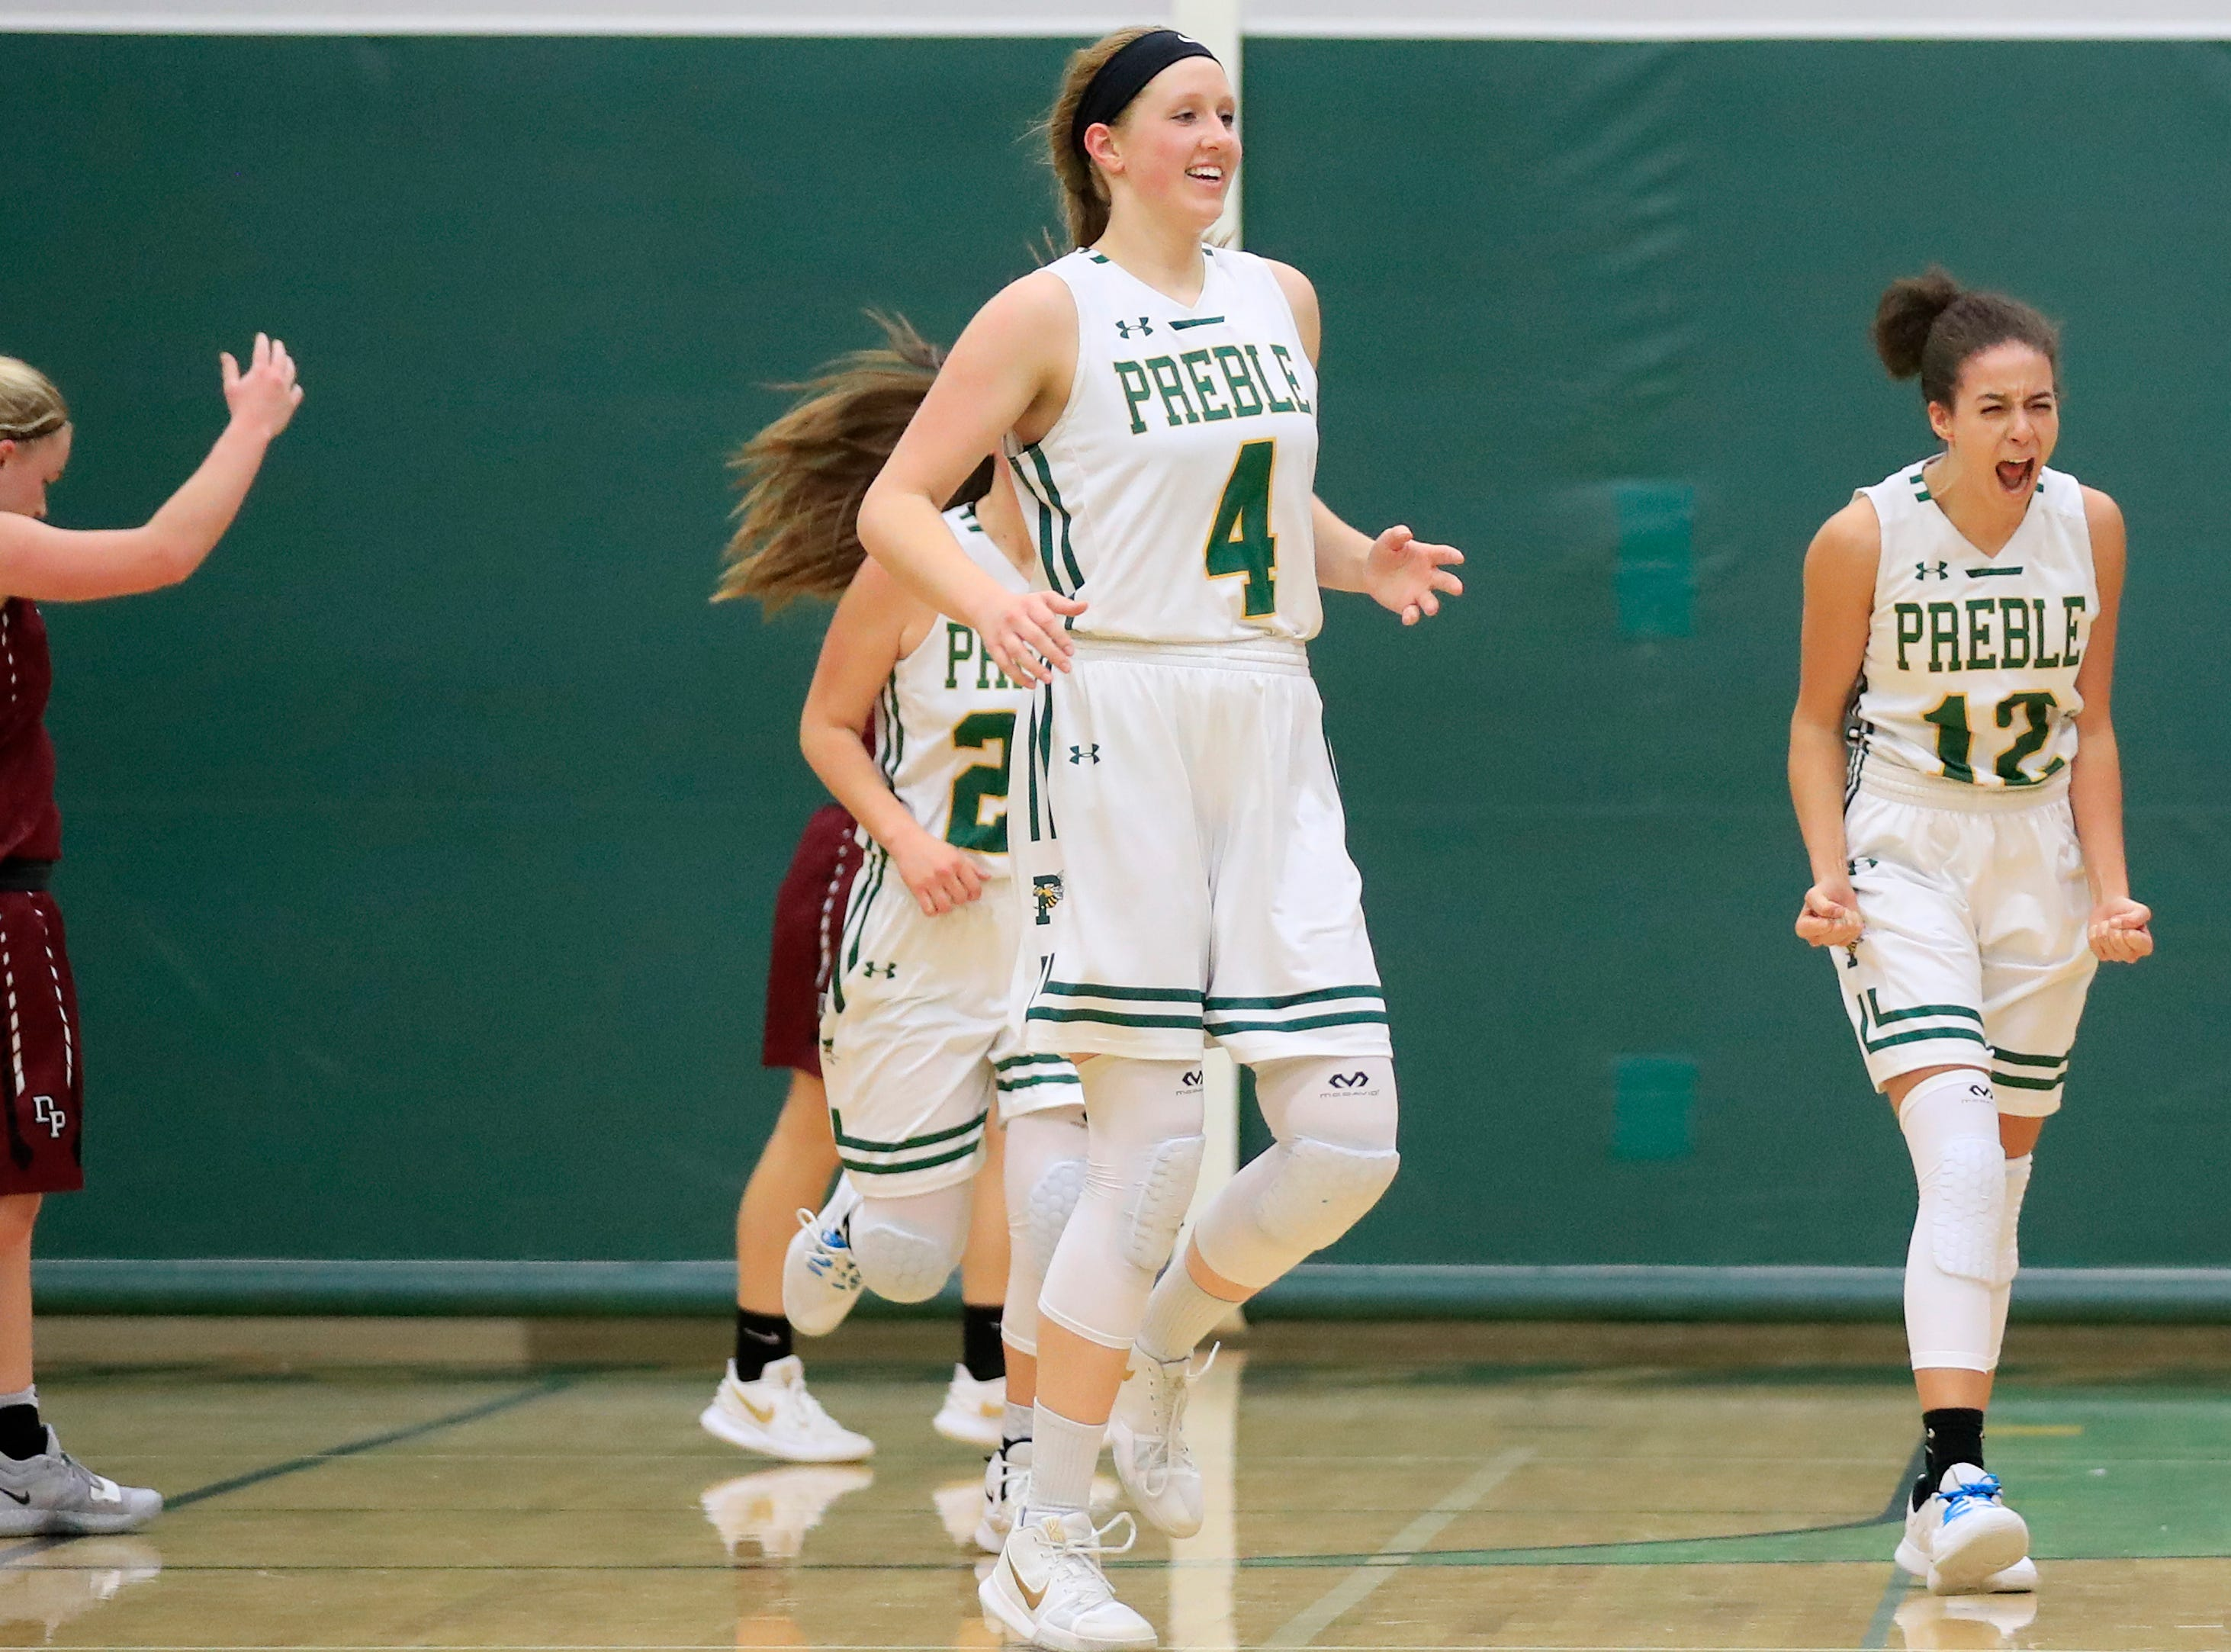 Green Bay Preble's Hannah Beauchamp (12) and Kendall Renard (4) celebrate after defeating De Pere in a girls basketball game at Preble high school on Tuesday, January 8, 2019 in Green Bay, Wis.